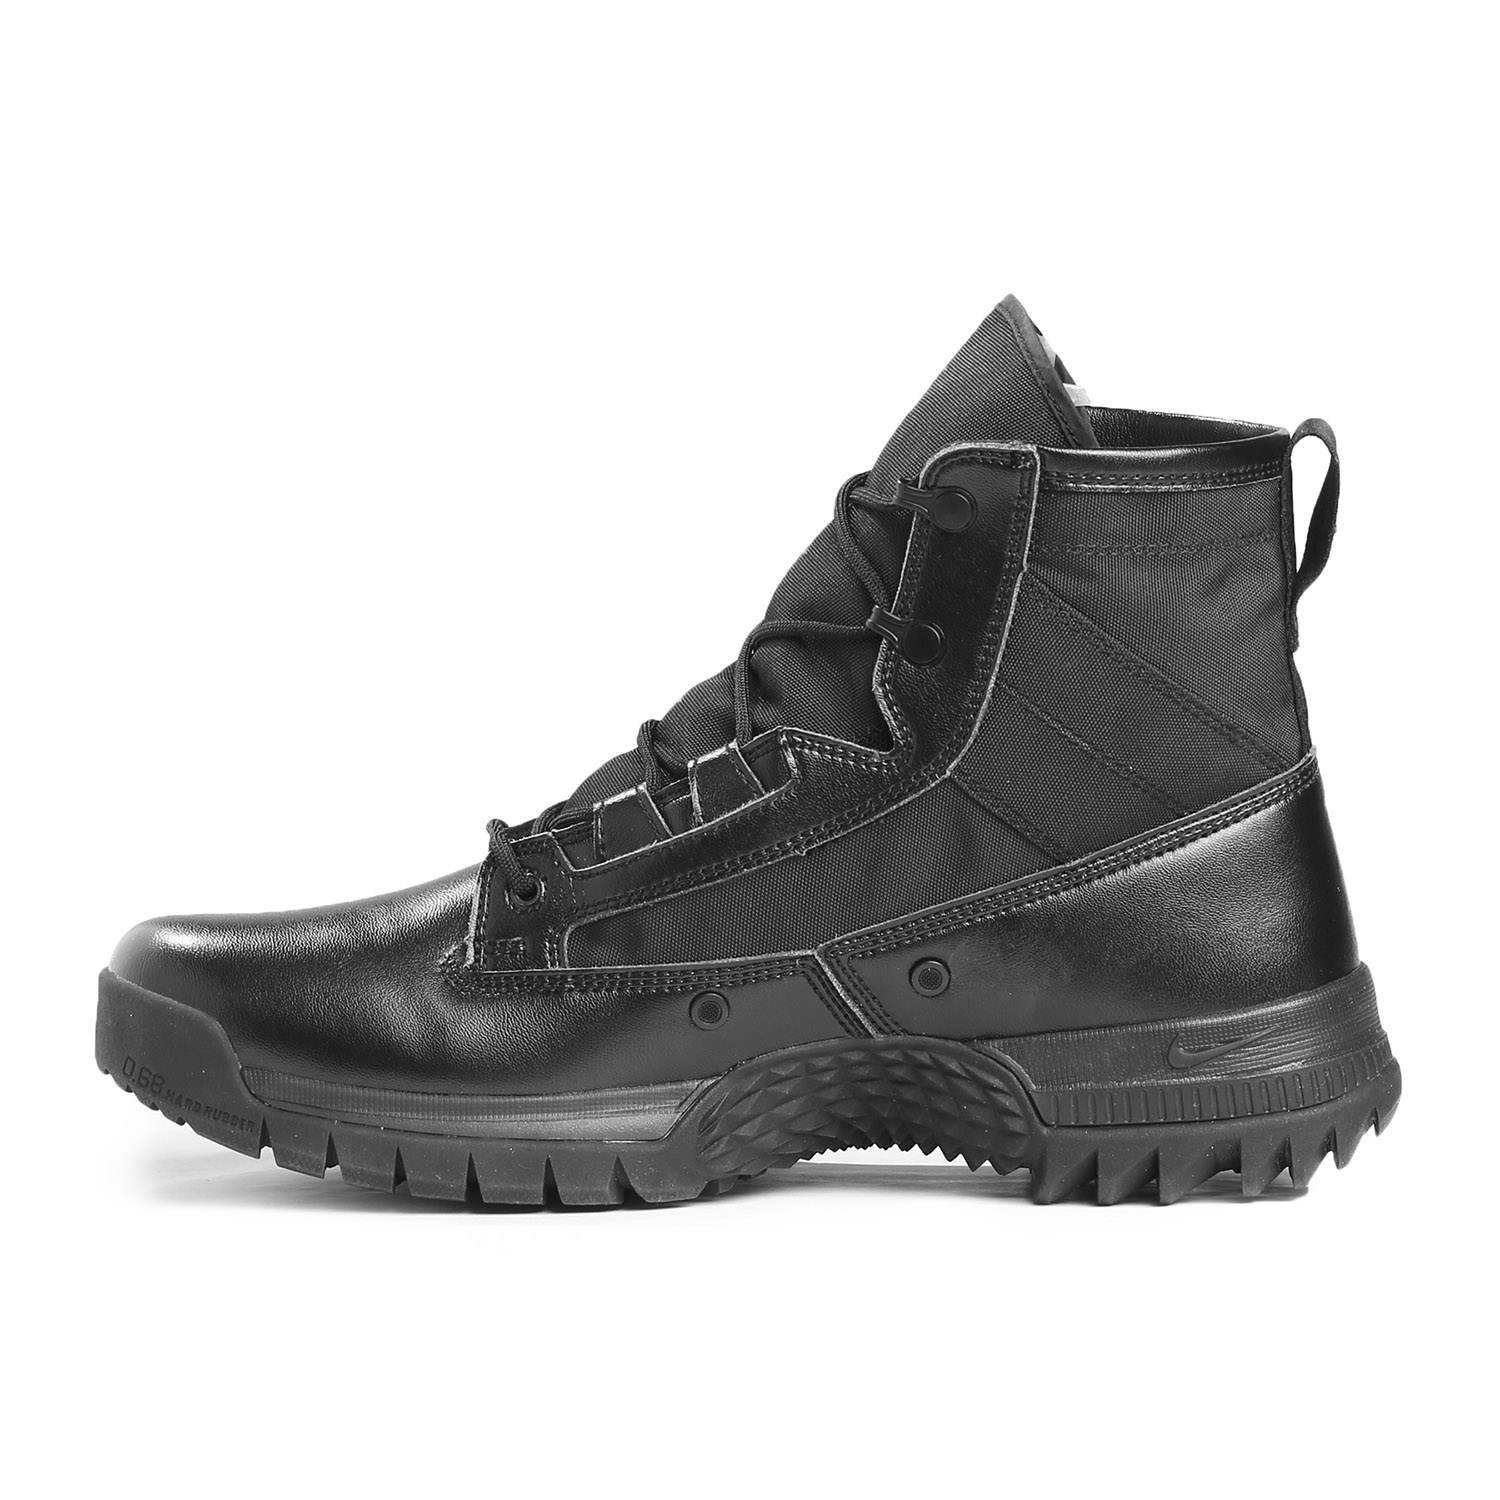 Nike Special Field Boot - galls.com